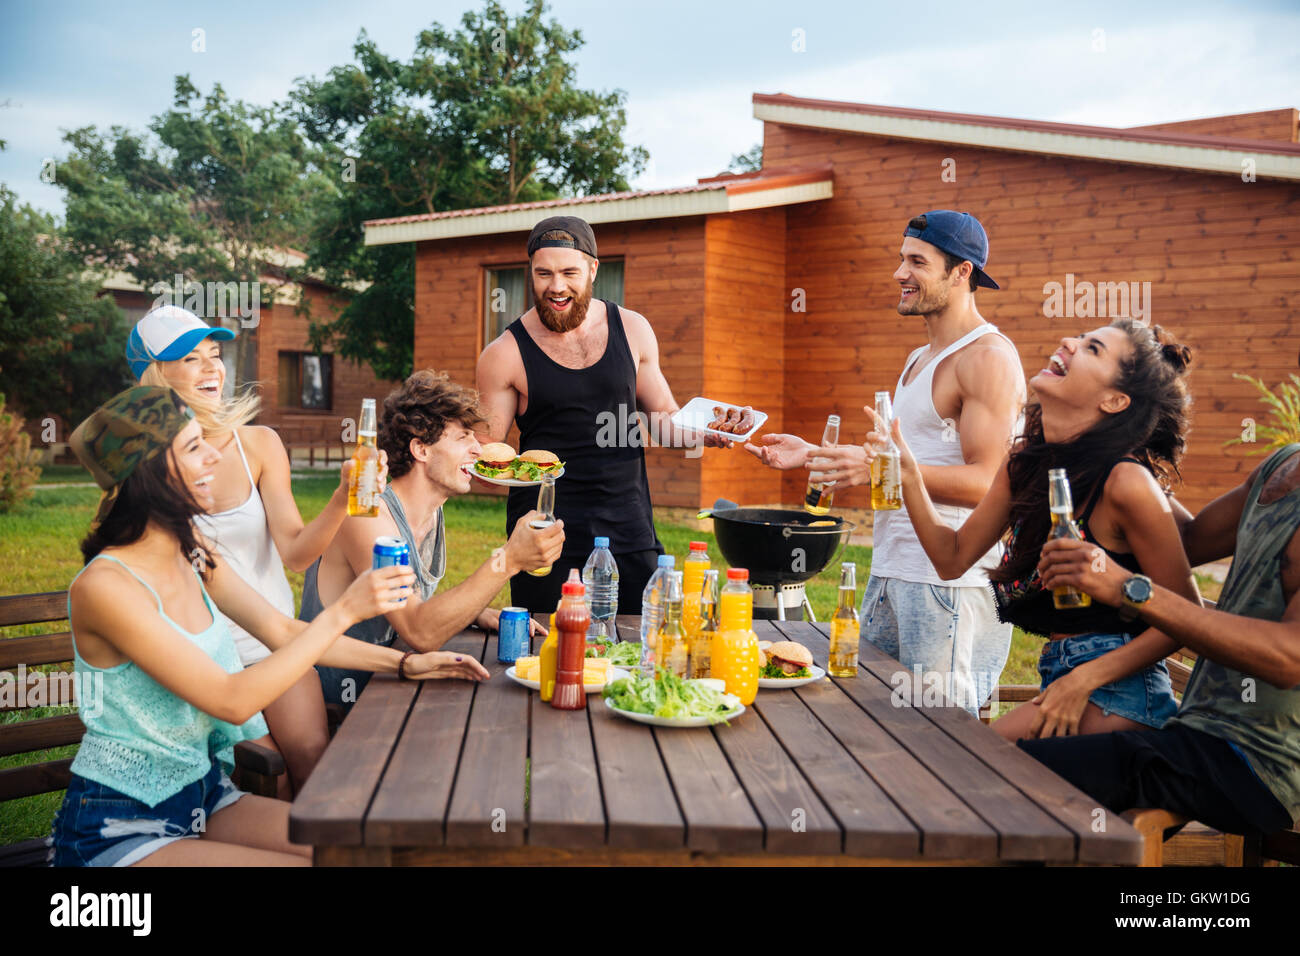 Group of happy young people laughing and having fun on barbeque party - Stock Image